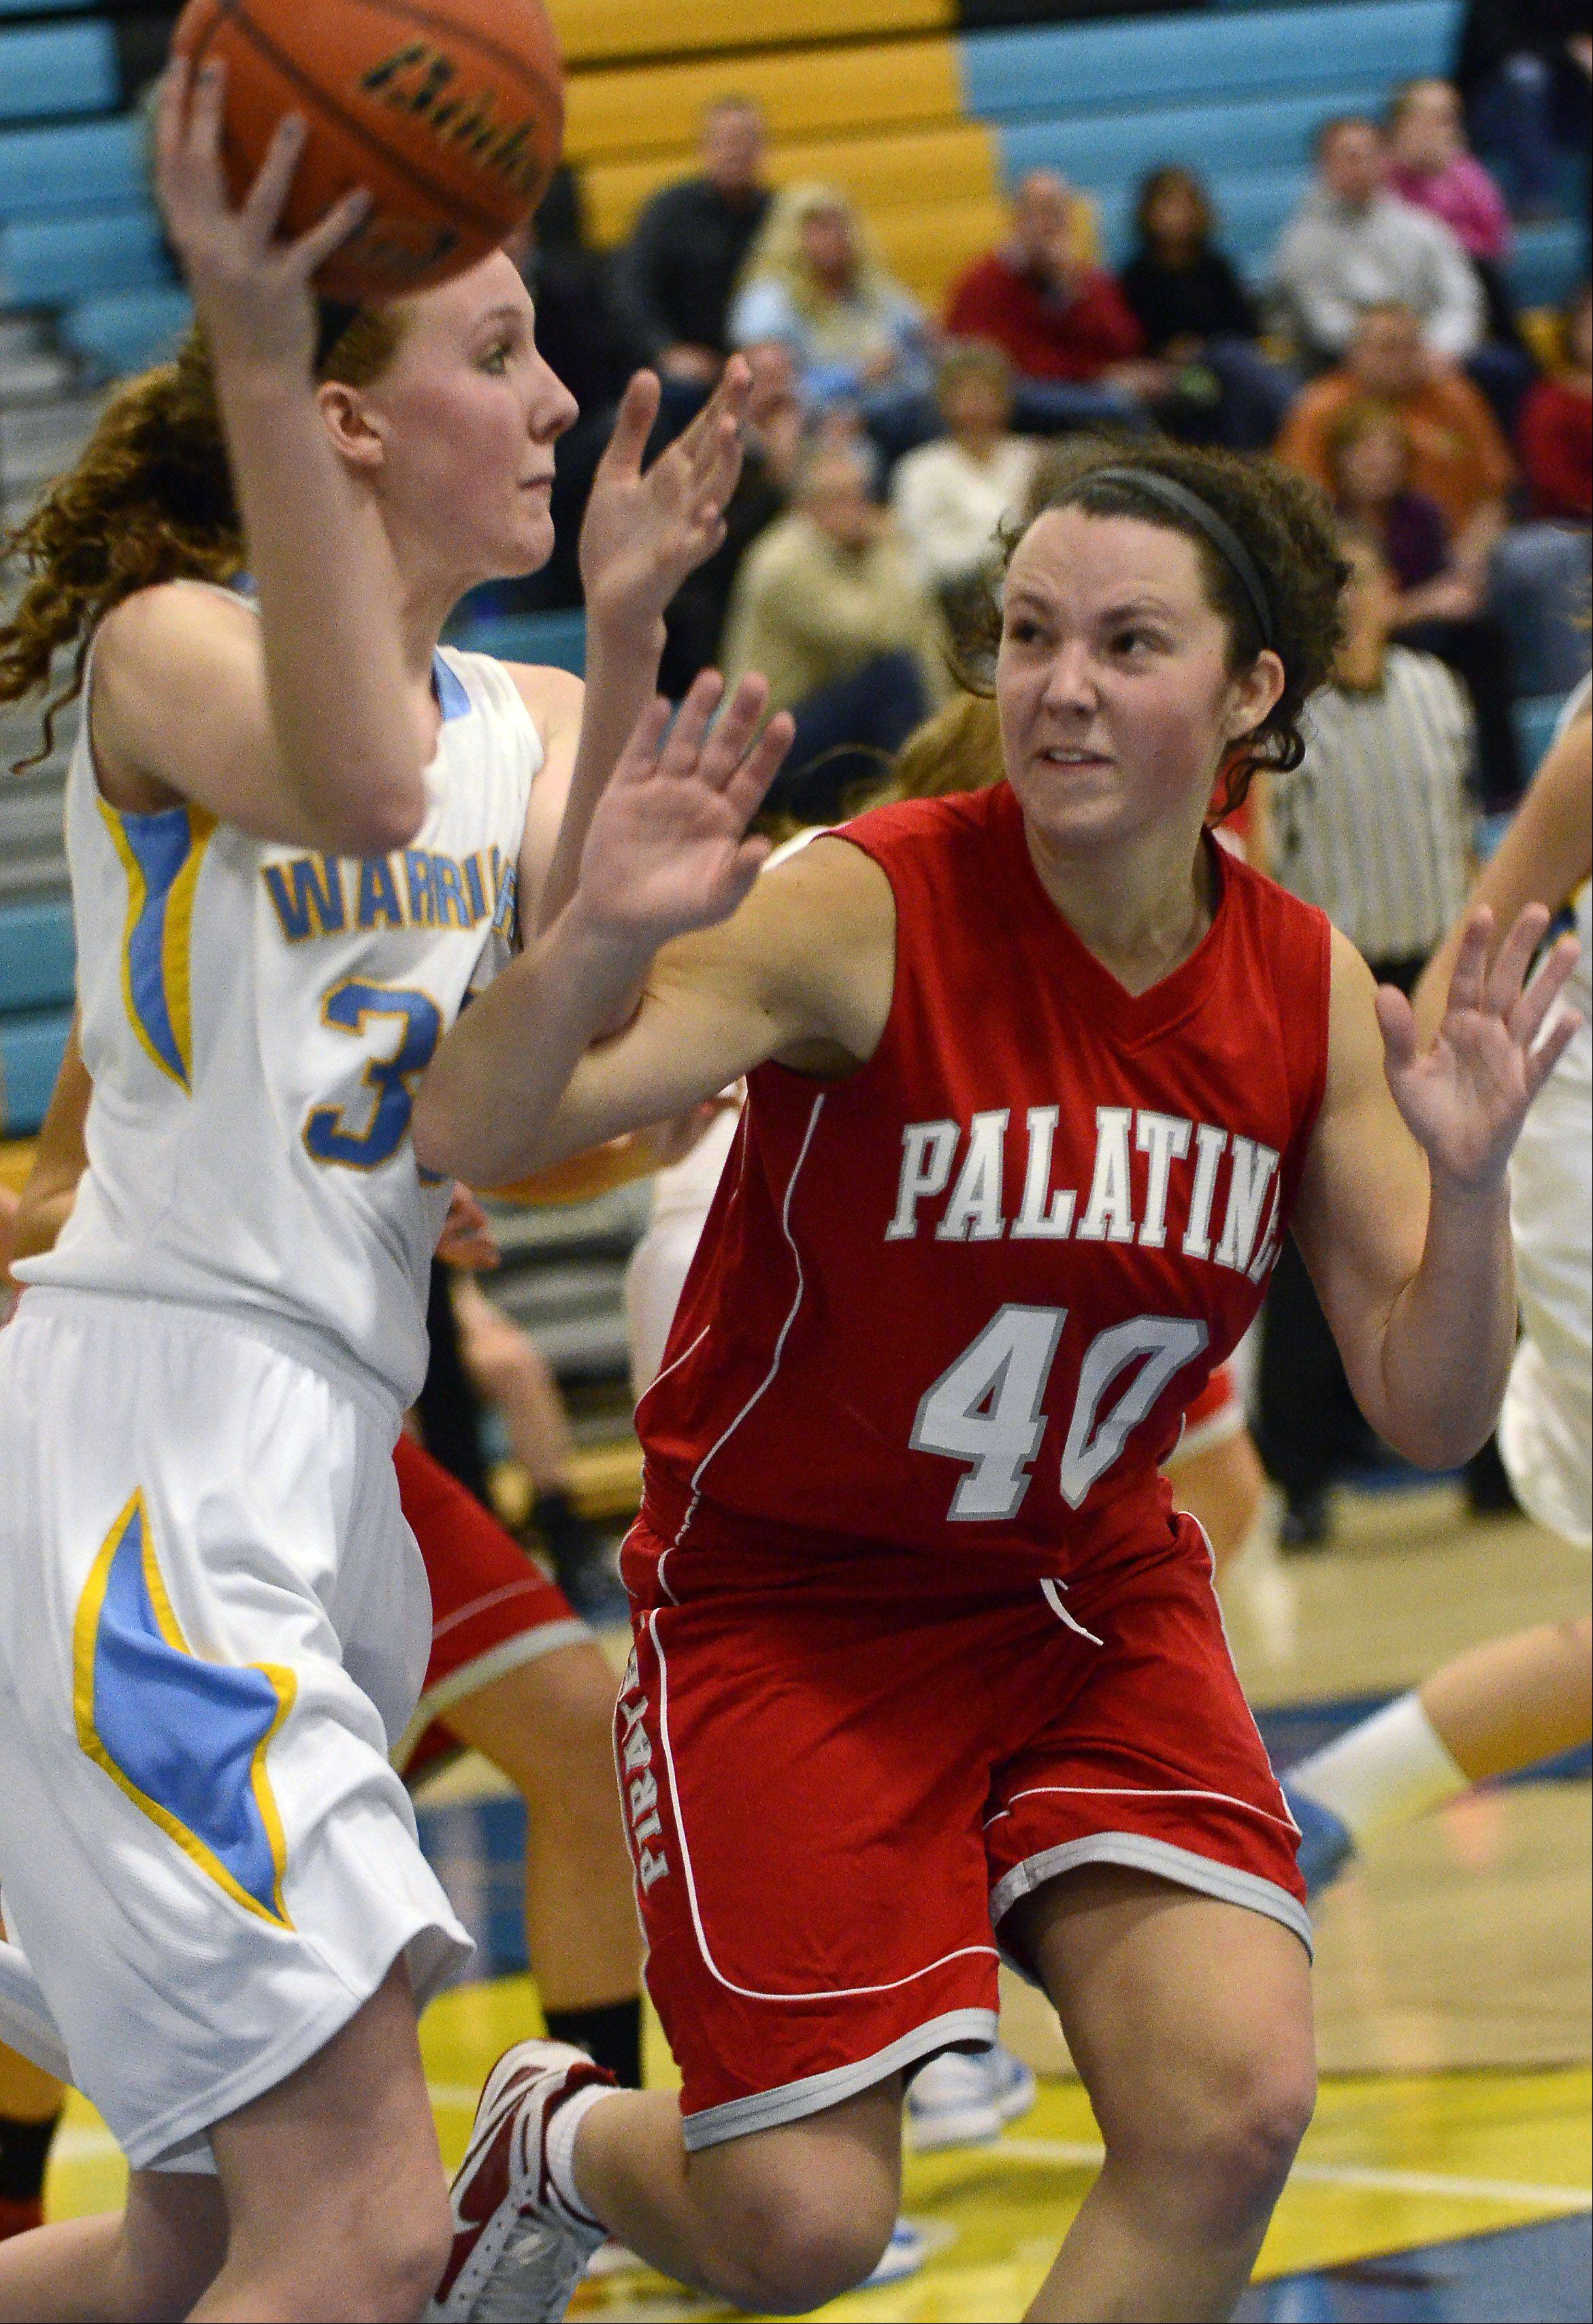 Maine West's Brittany Collins, 30, passes around Palatine's Jamie Lloyd during the season basketball opener Monday.